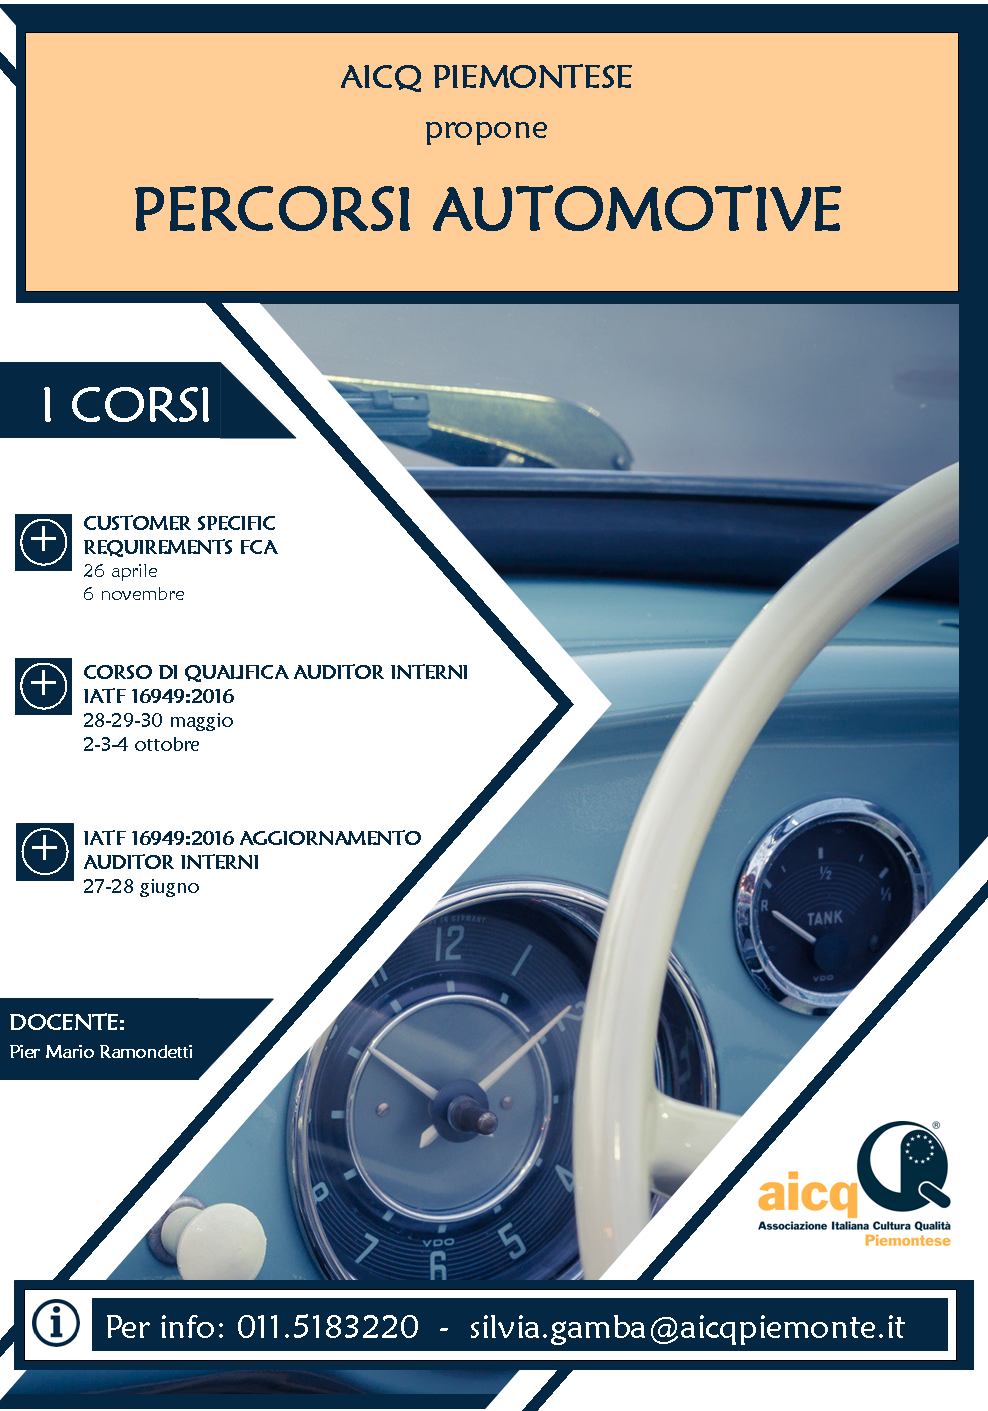 Percorsi Automotive